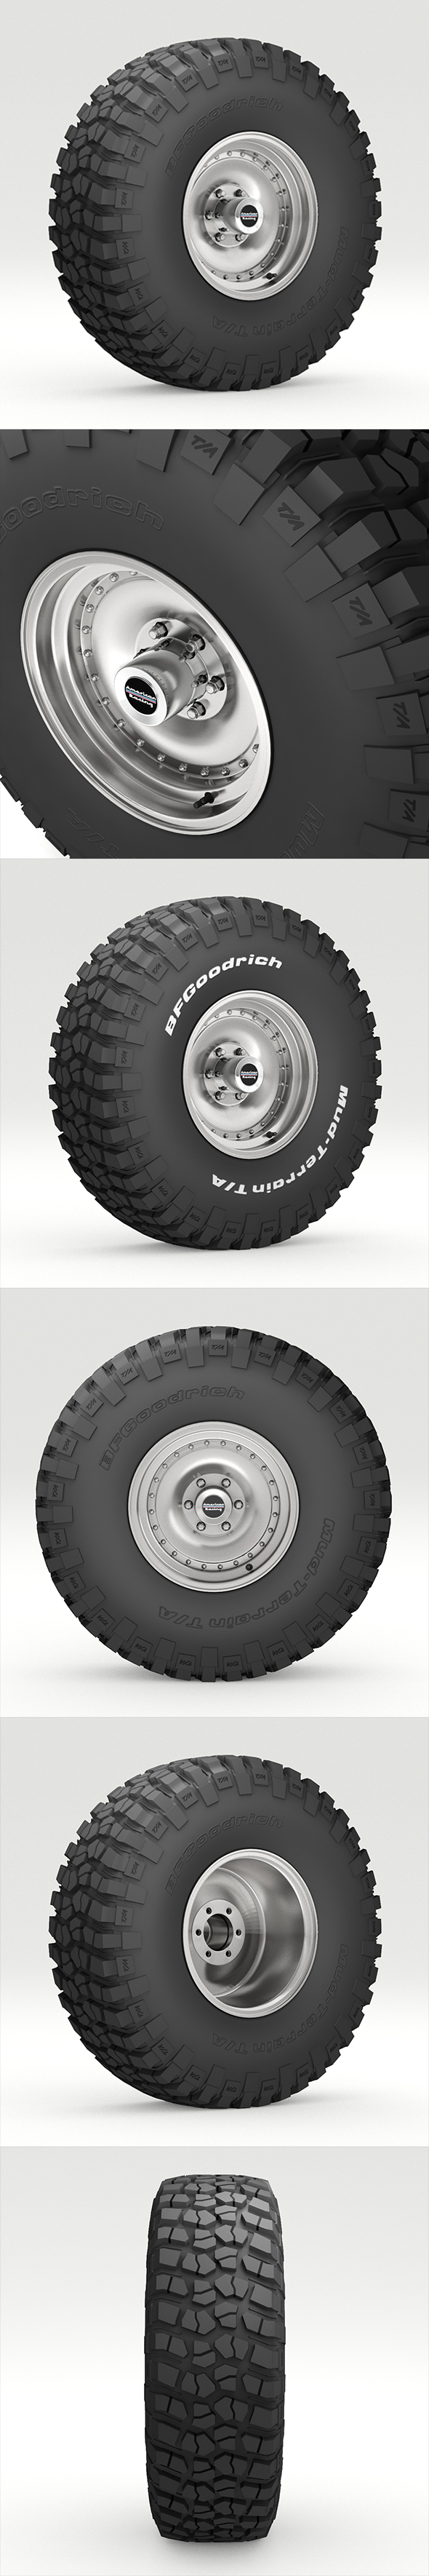 OFF ROAD WHEEL AND TIRE 6